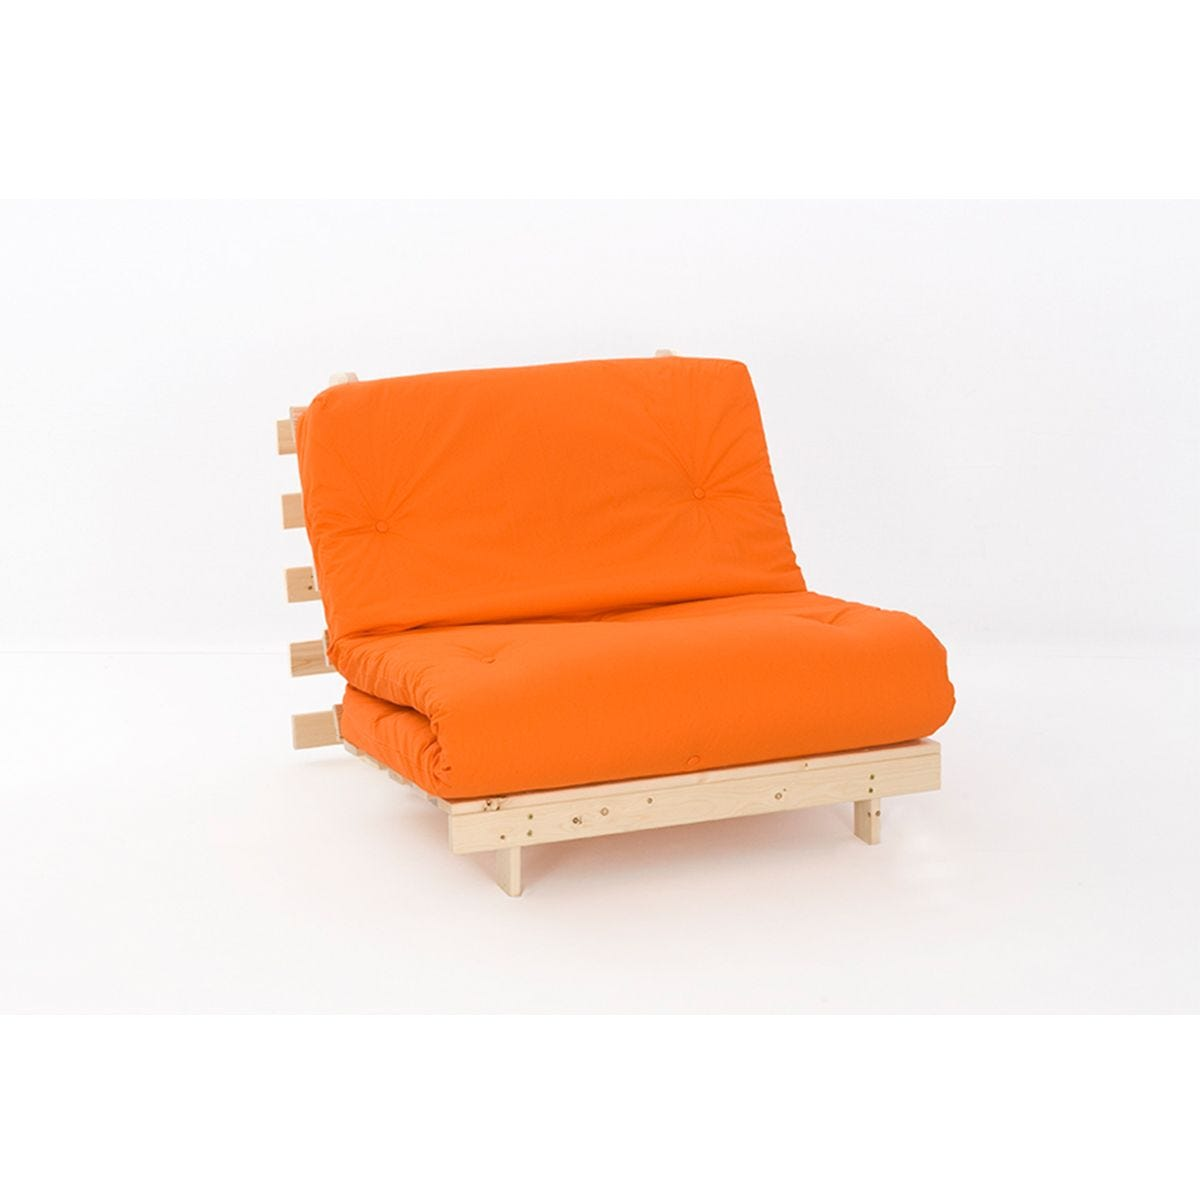 Ayr Futon Set With Tufted Mattress - Orange